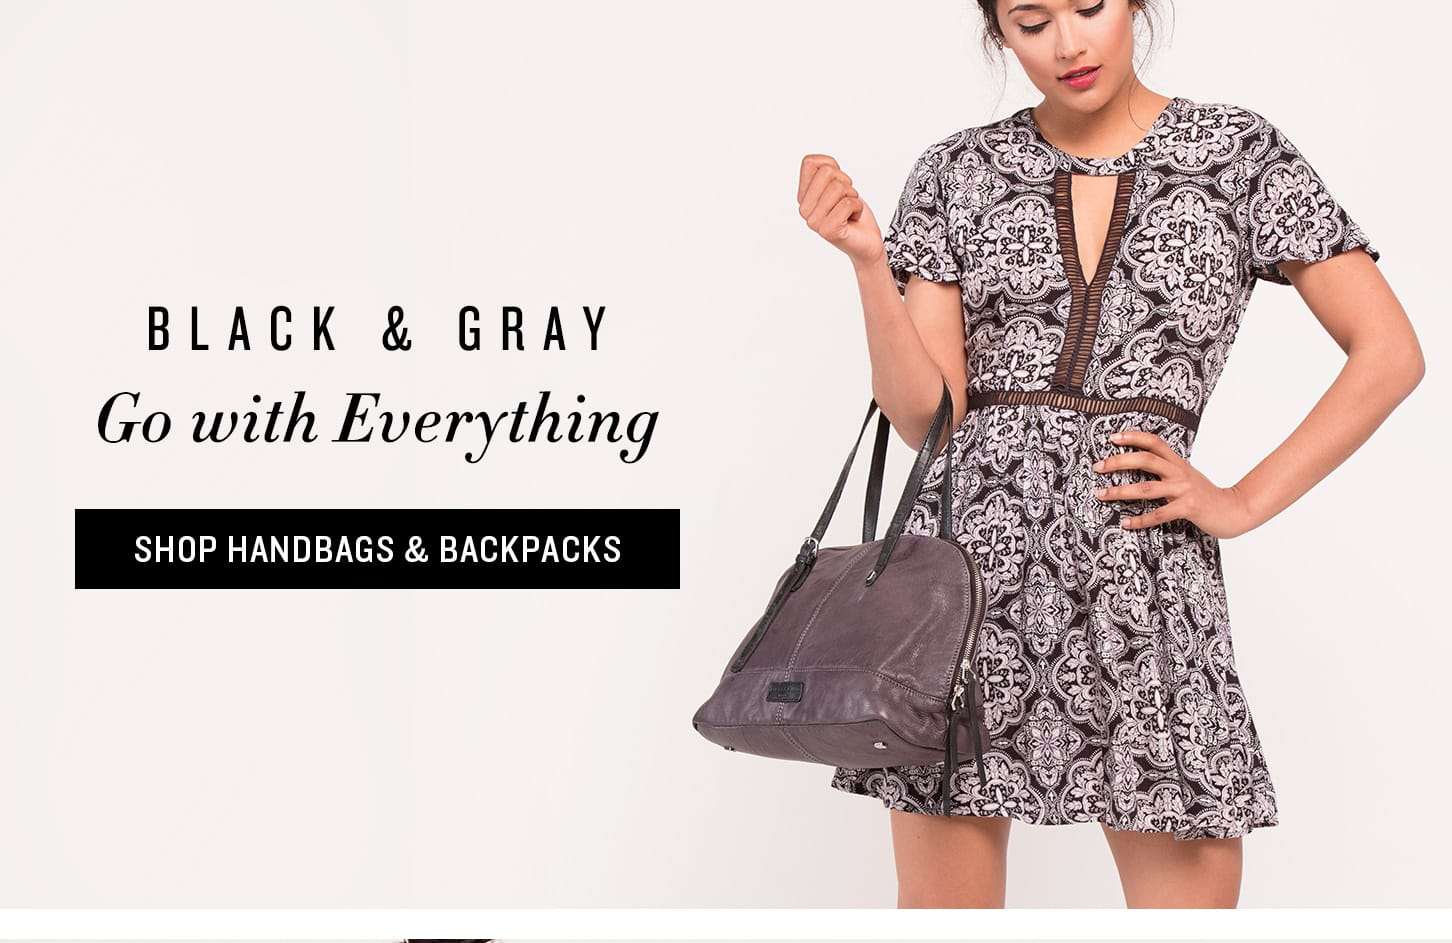 Shop Black Handbags & Backpacks